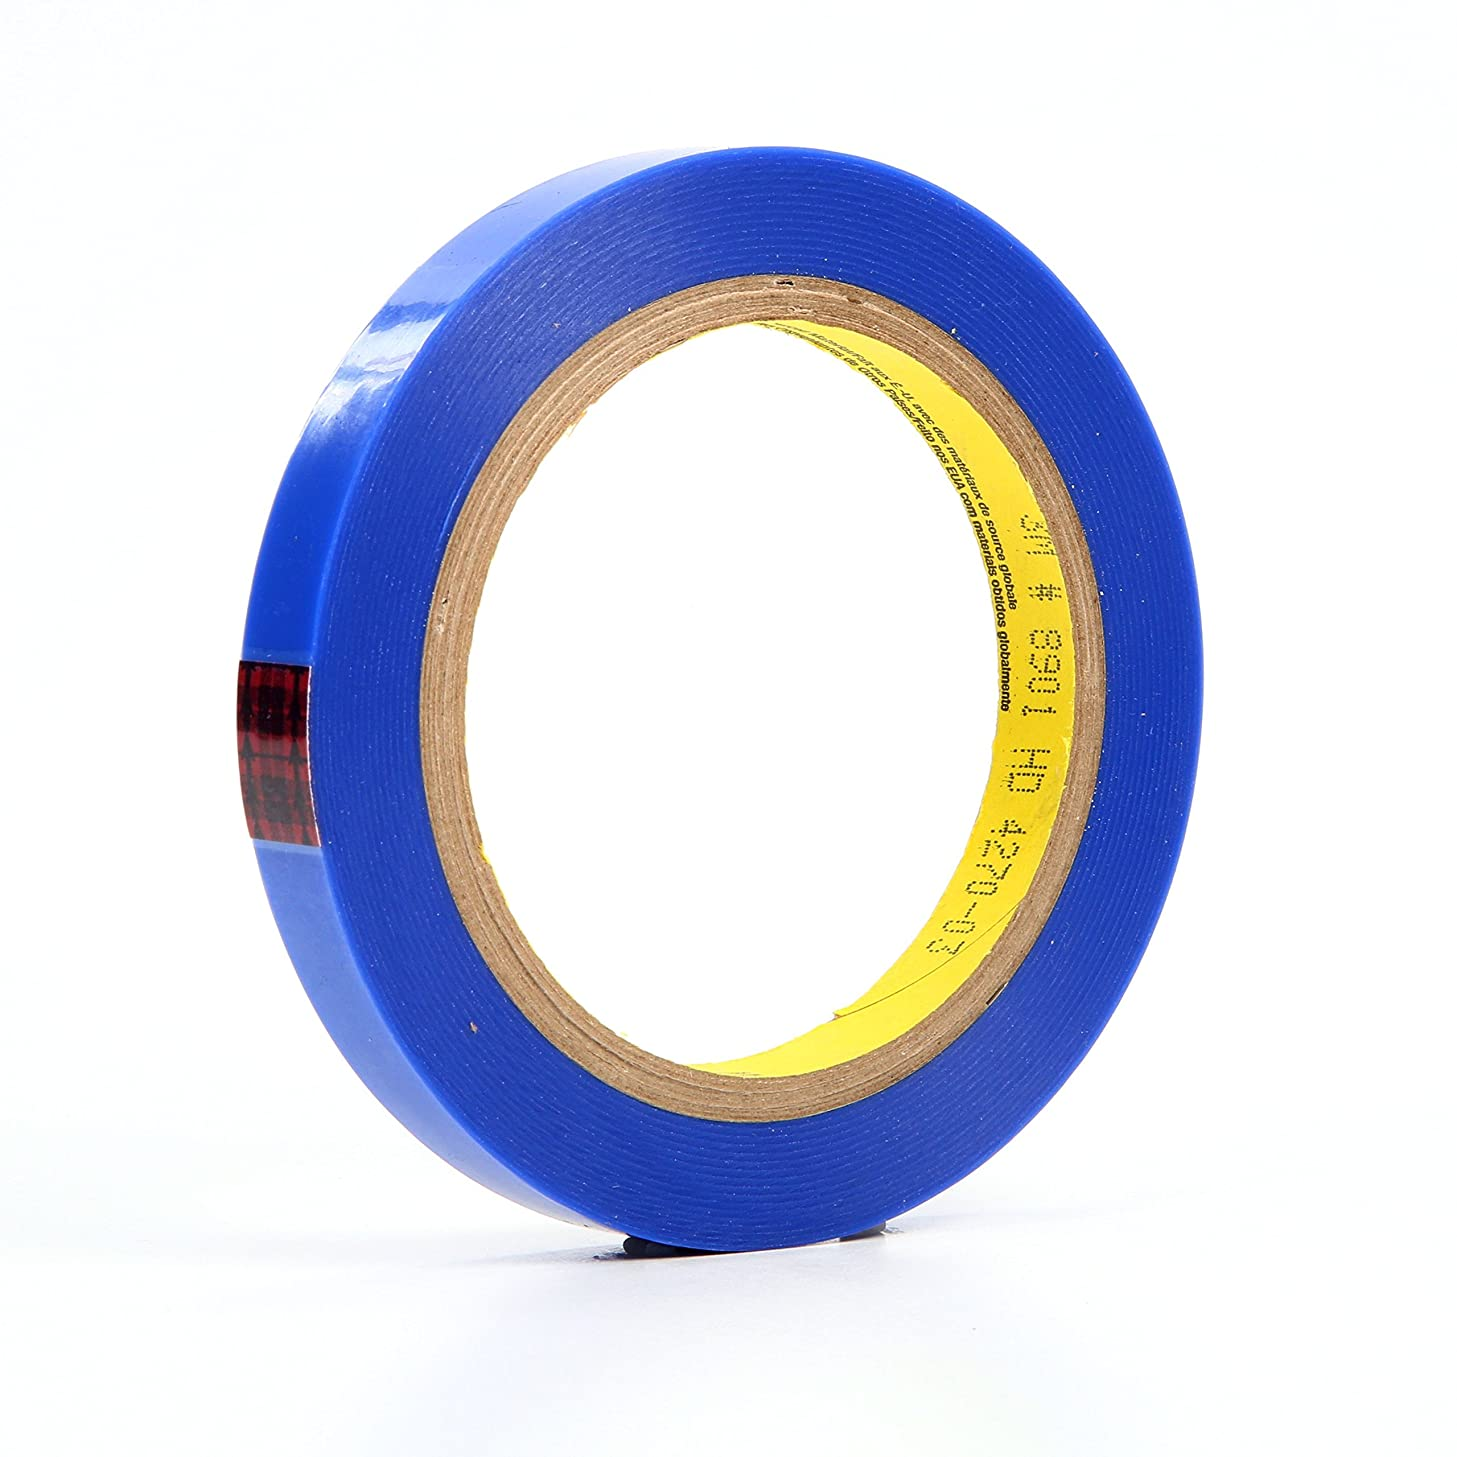 3M 92765 Polyester Tape 8901 Blue, 1/2